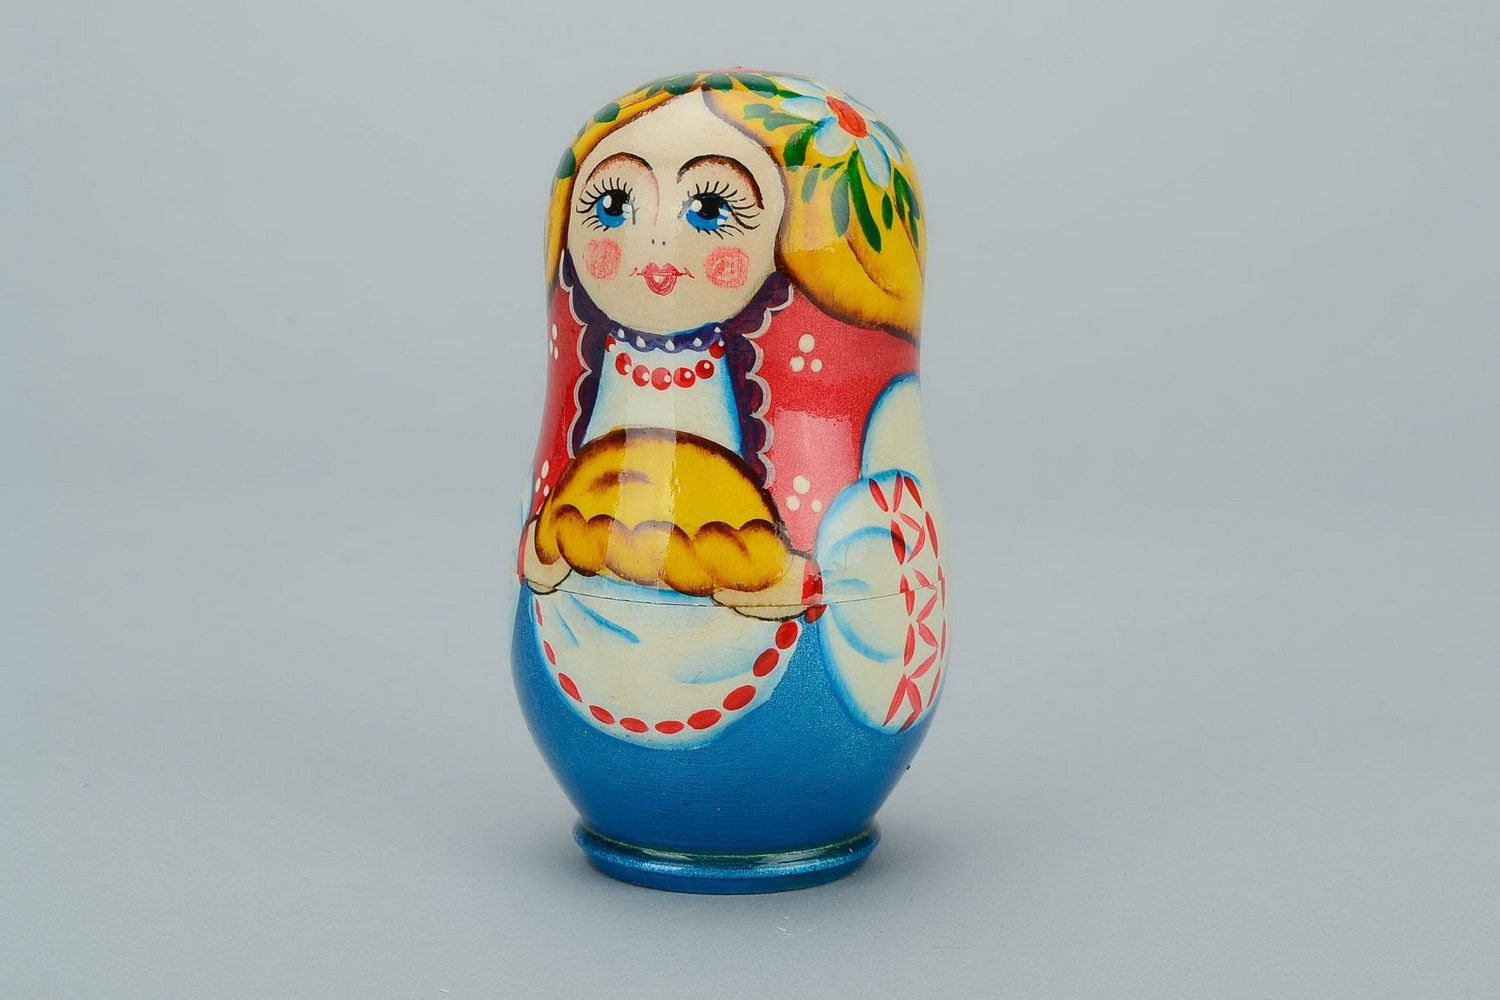 Wooden matryoshka doll with loaf photo 2